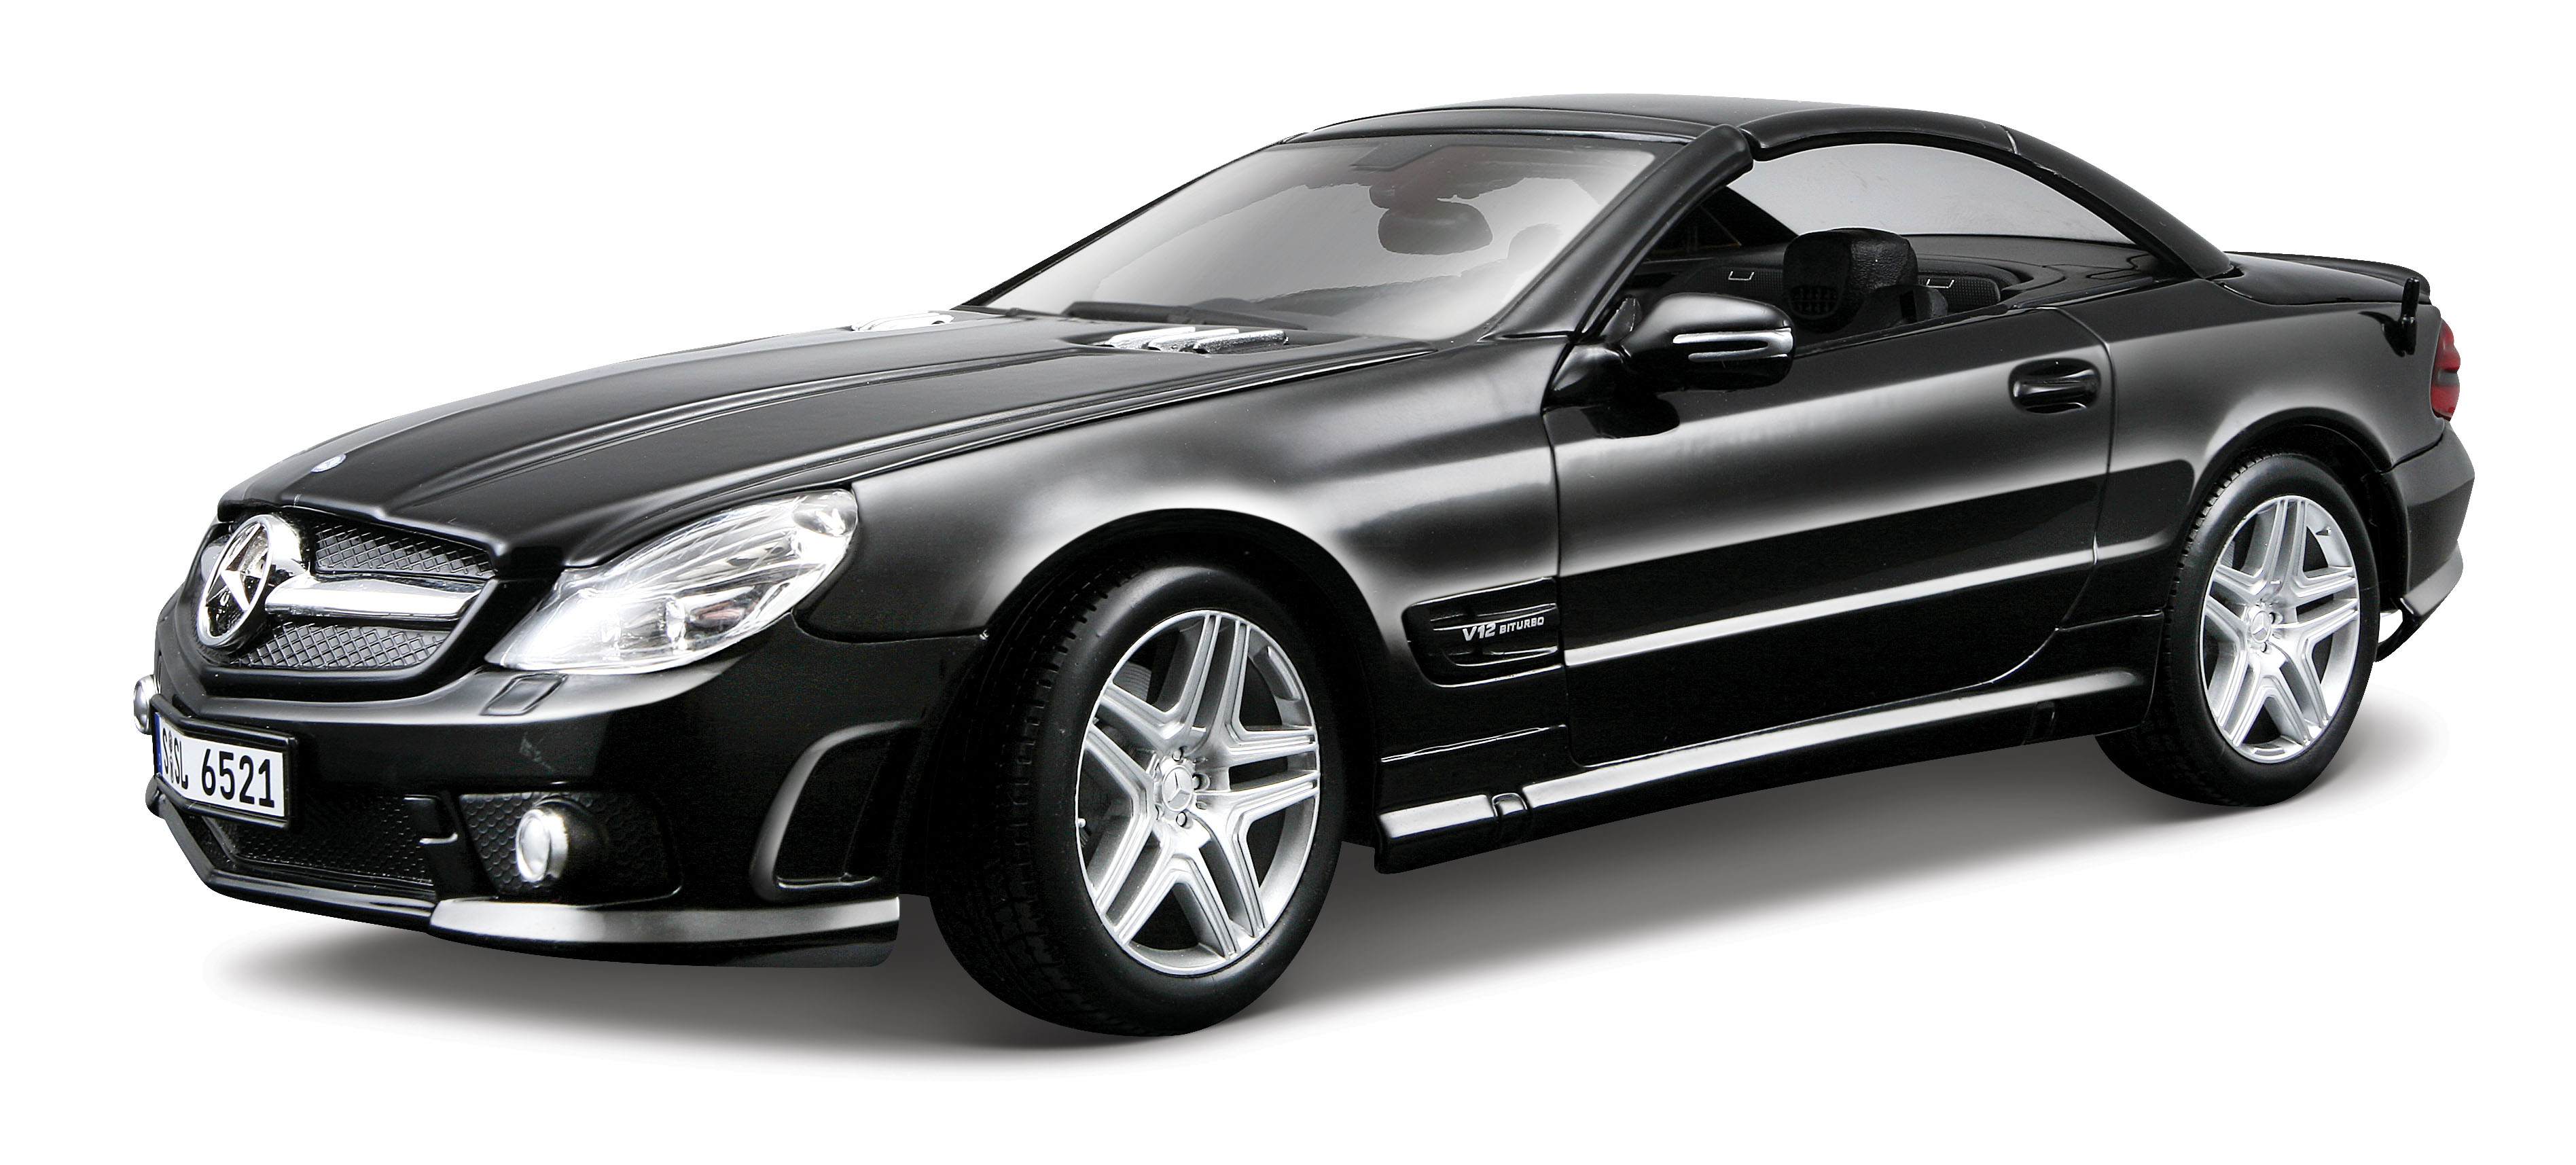 Mercedes Benz SL-65 AMG 2009 CONVERTIBLE